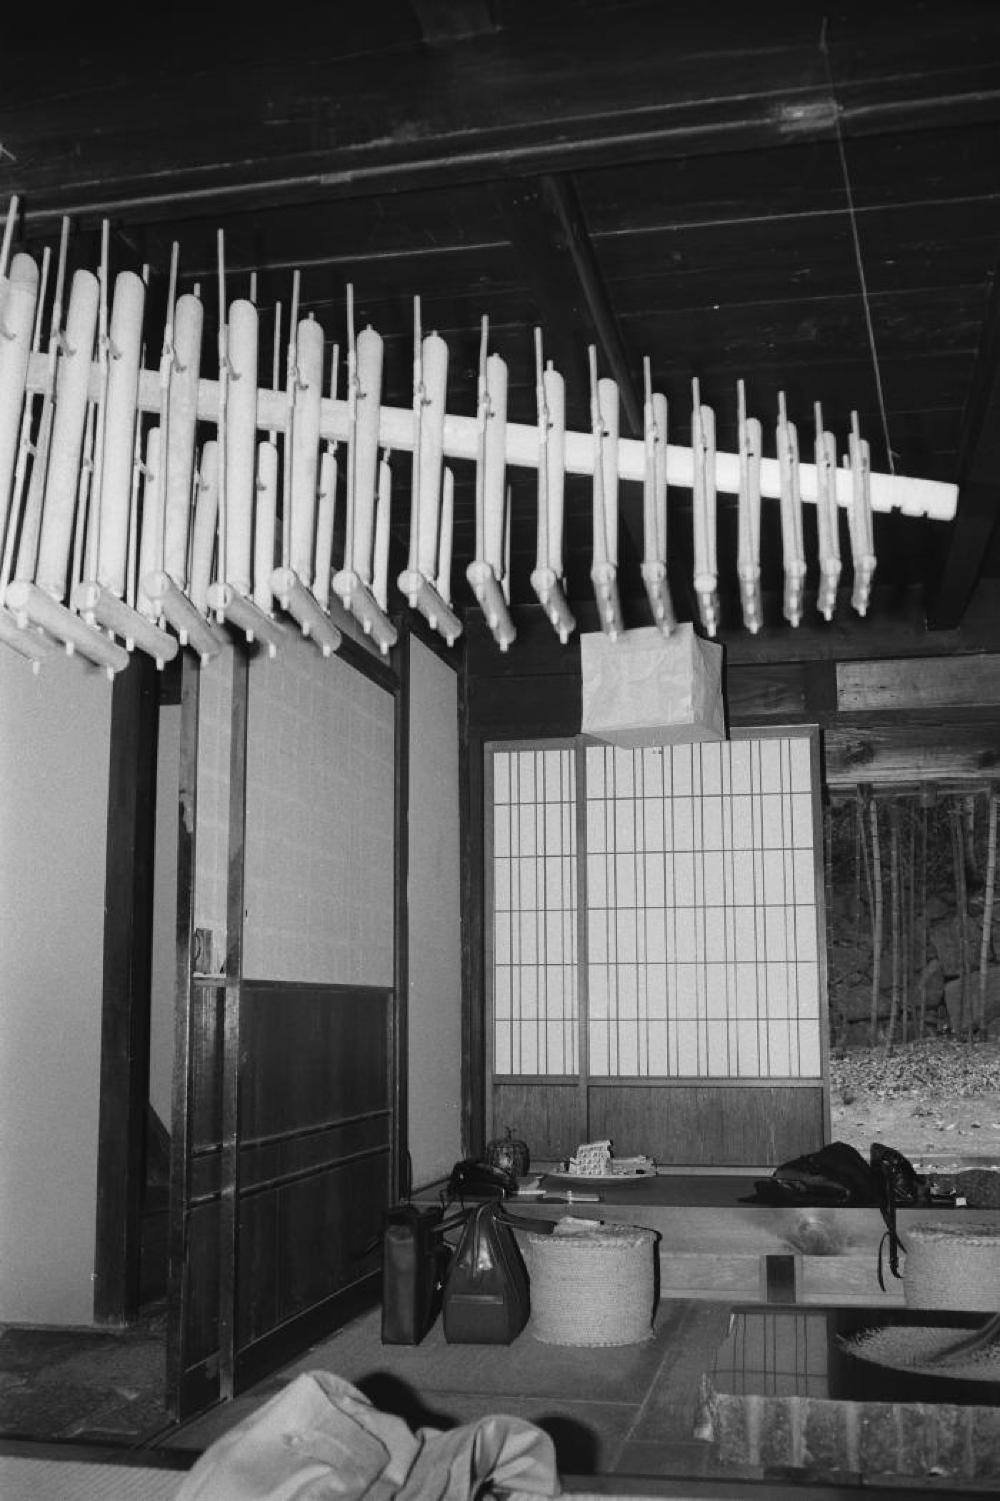 Angklung in Isamu Noguchi's home in Mure, Japan, c. 1980s